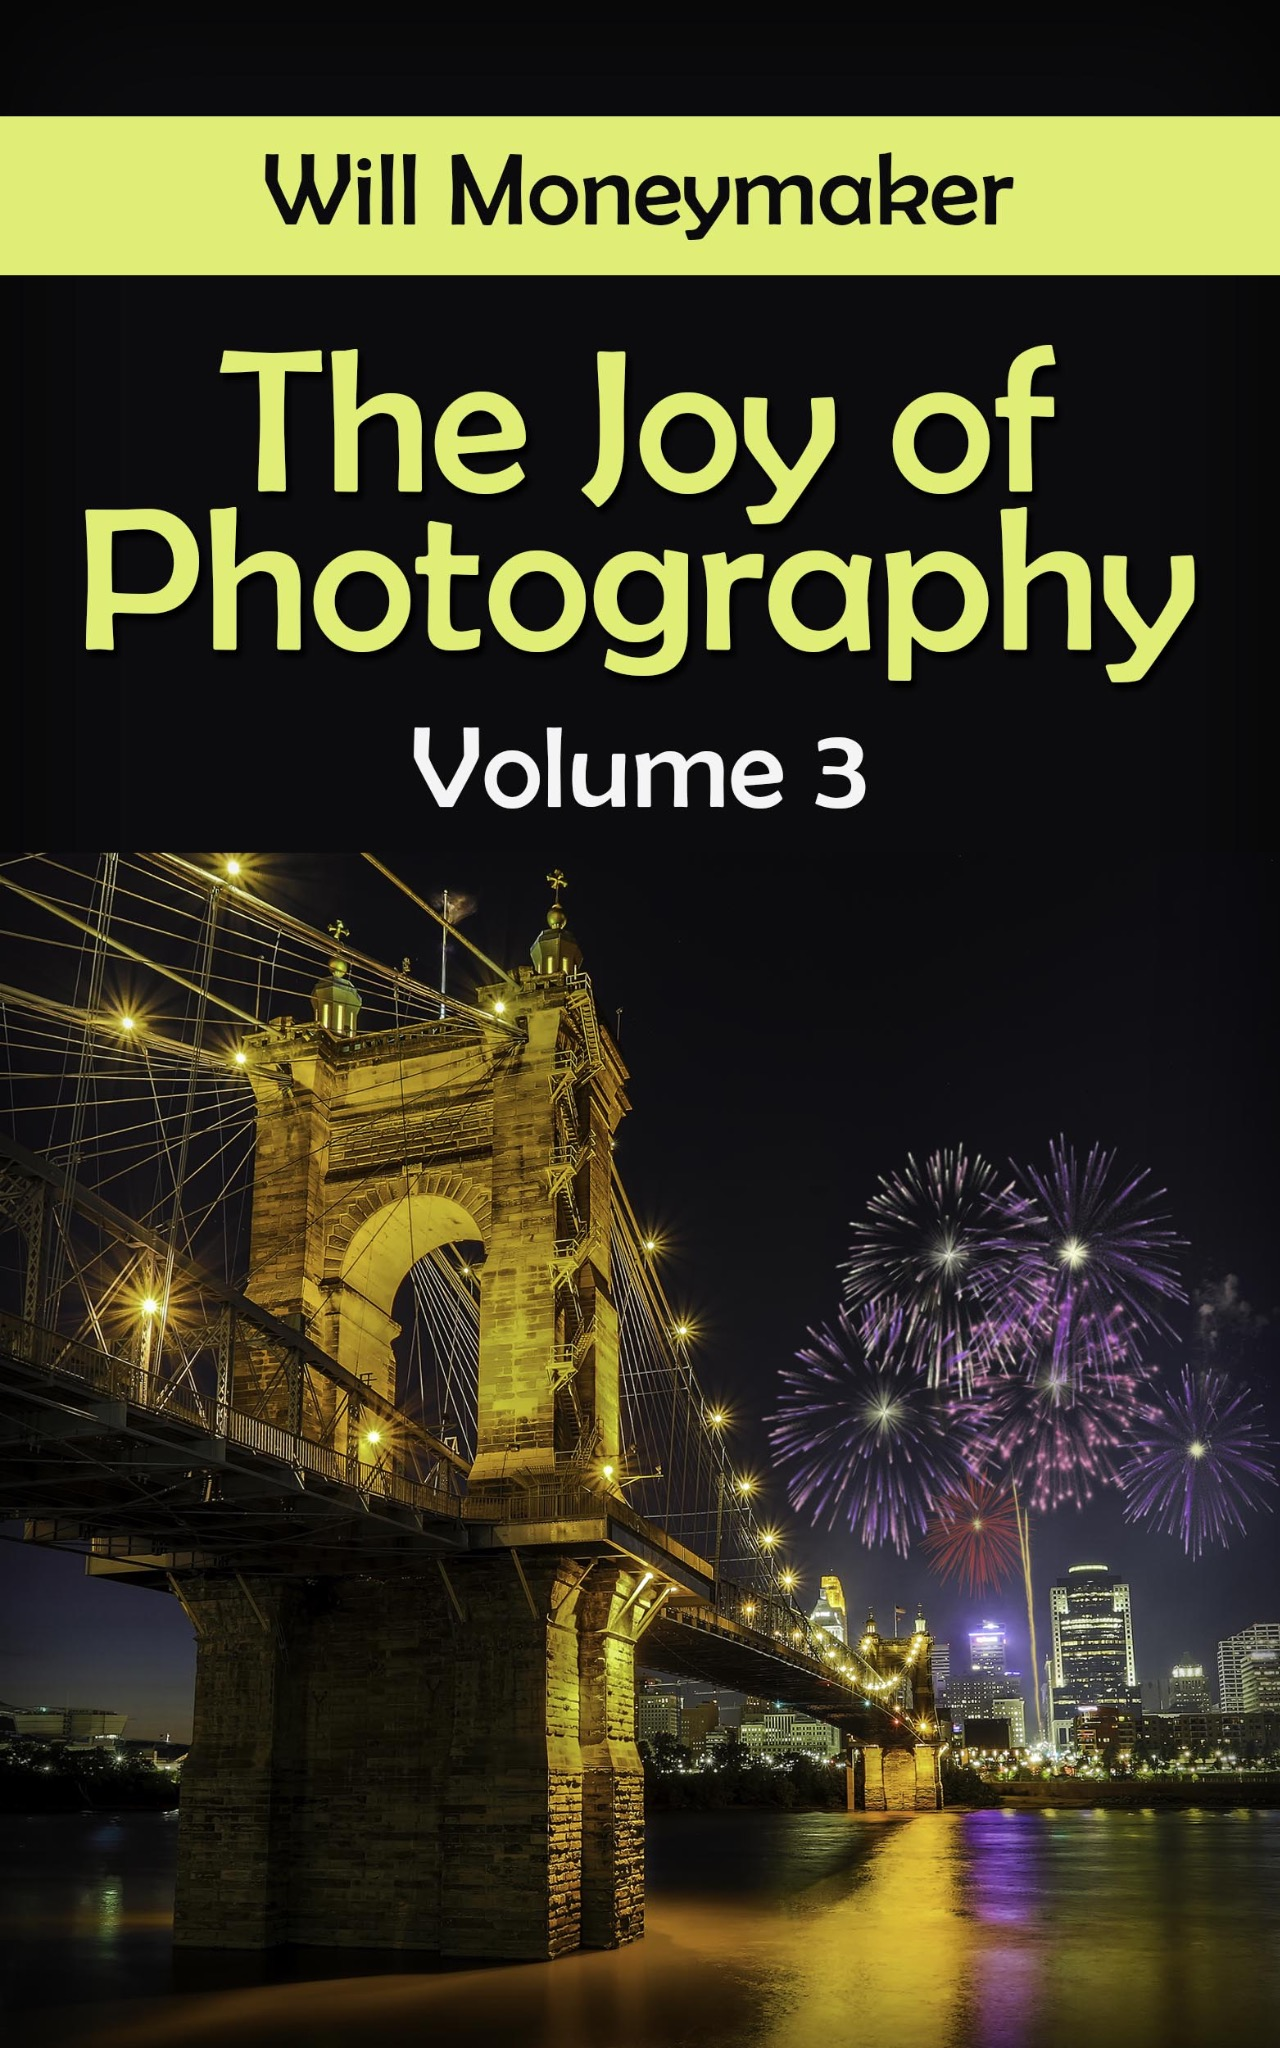 The Joy of Photography #3